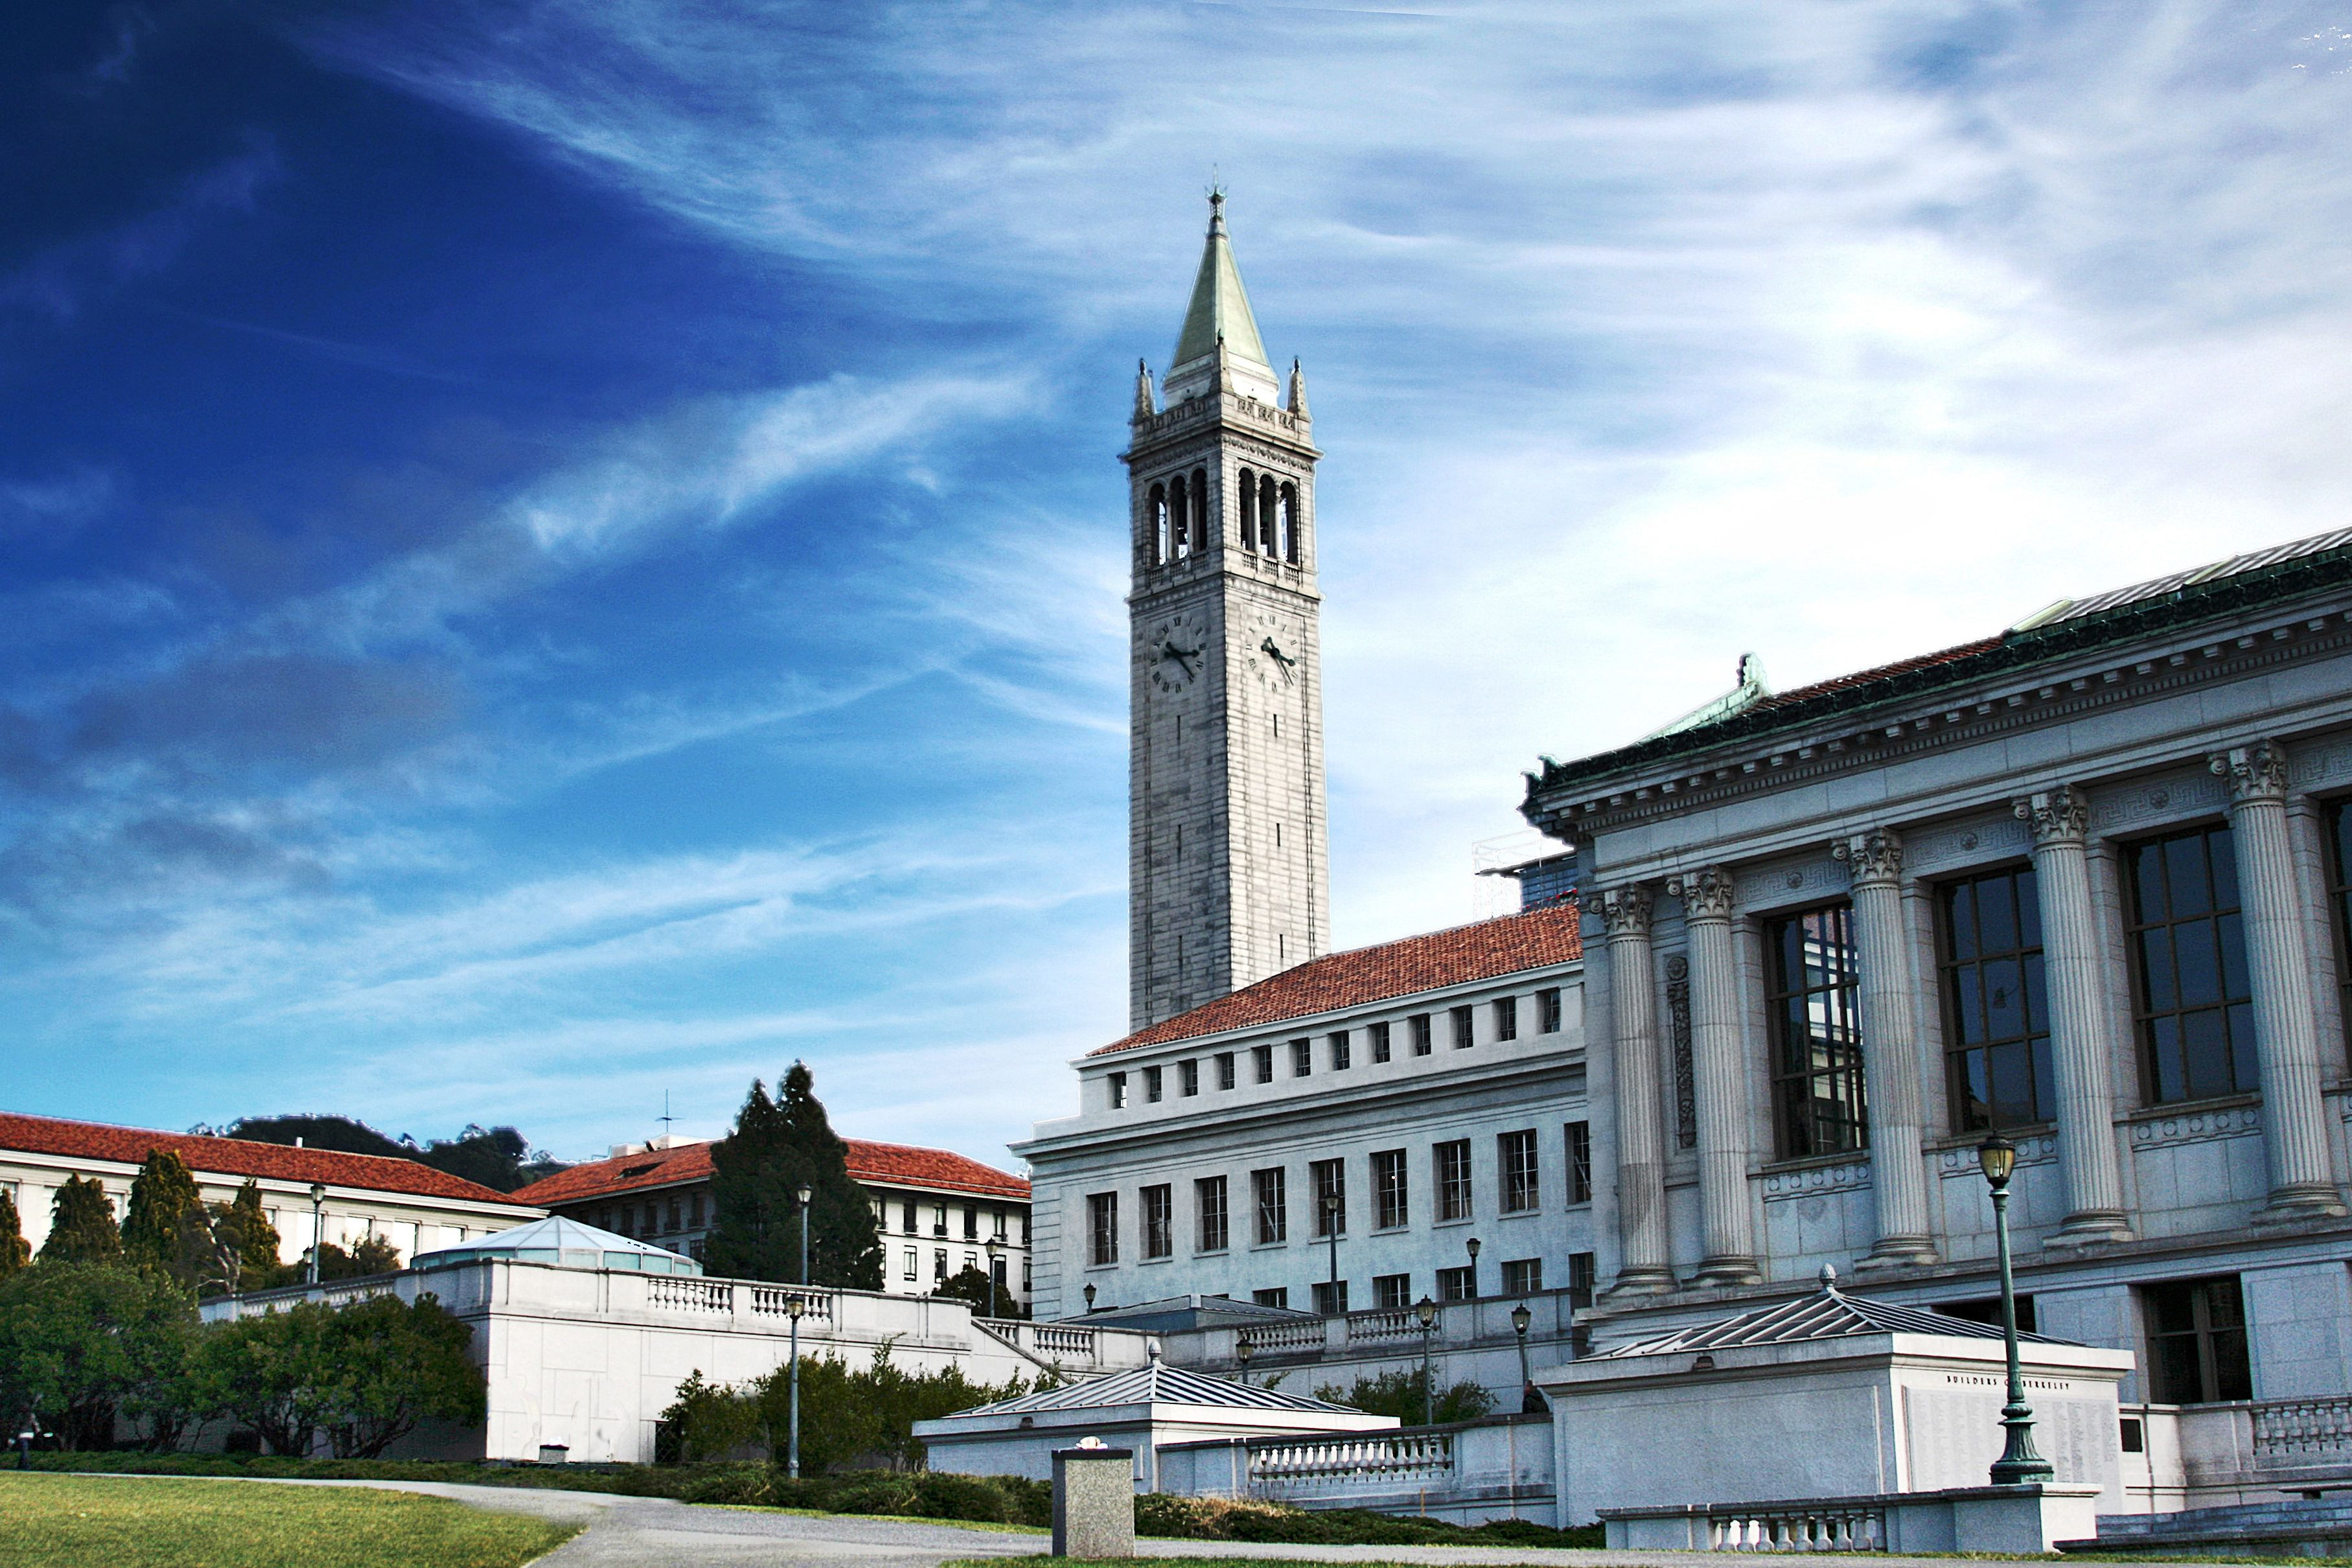 cal berkeley application essay prompt Uc admissions applicants face more essay choices, shorter lengths  on racial affirmative action in public college admissions in california  the essay prompts.